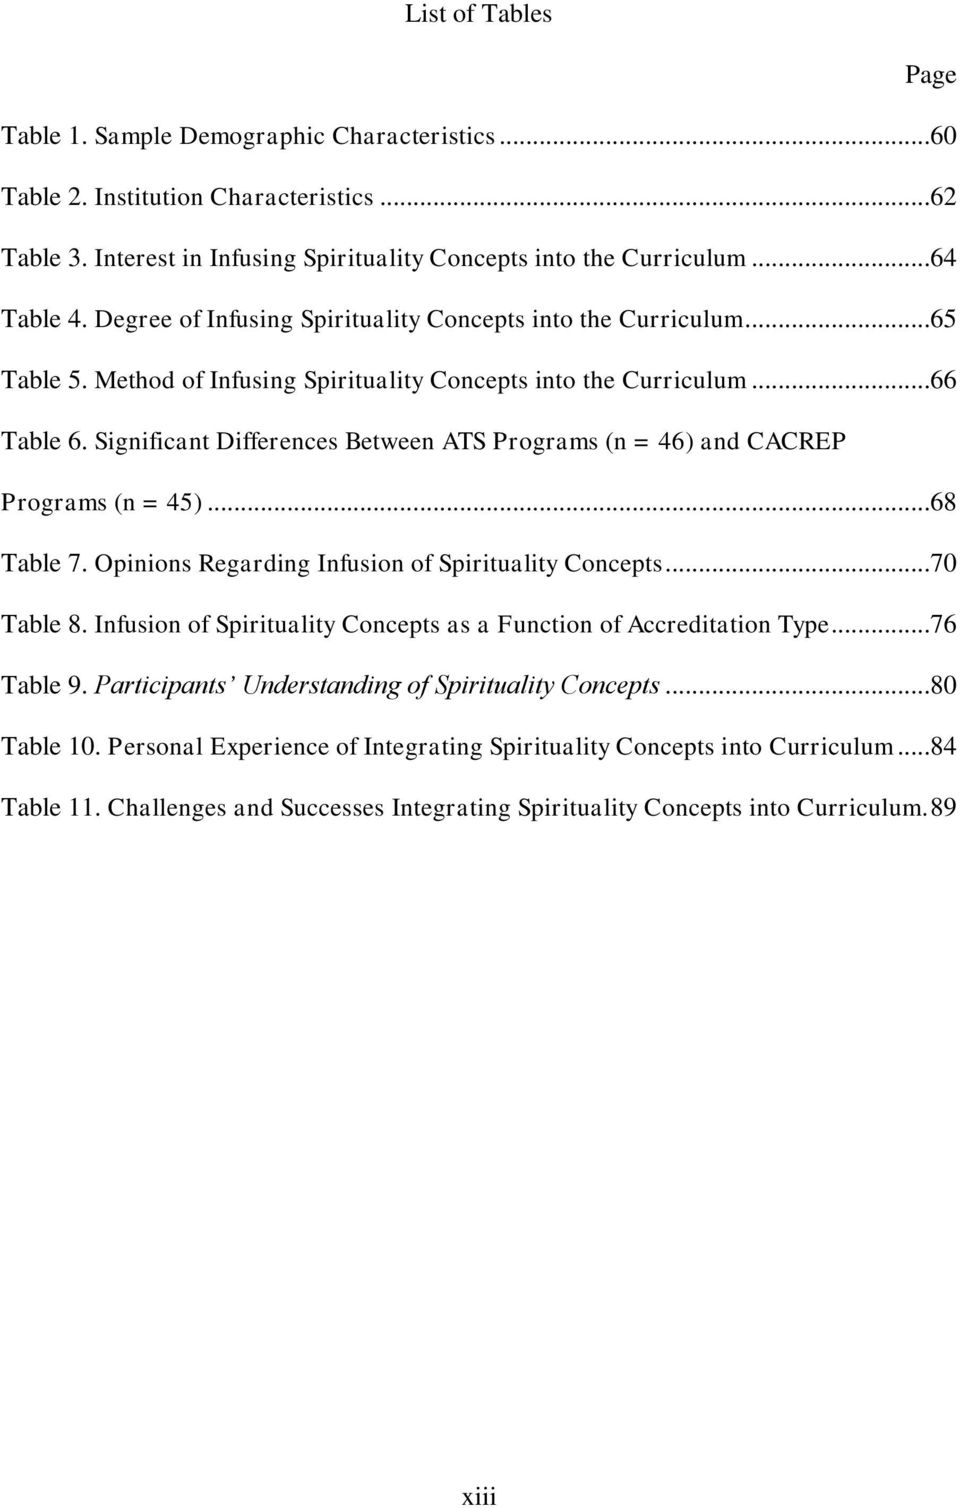 Significant Differences Between ATS Programs (n = 46) and CACREP Programs (n = 45)...68 Table 7. Opinions Regarding Infusion of Spirituality Concepts...70 Table 8.